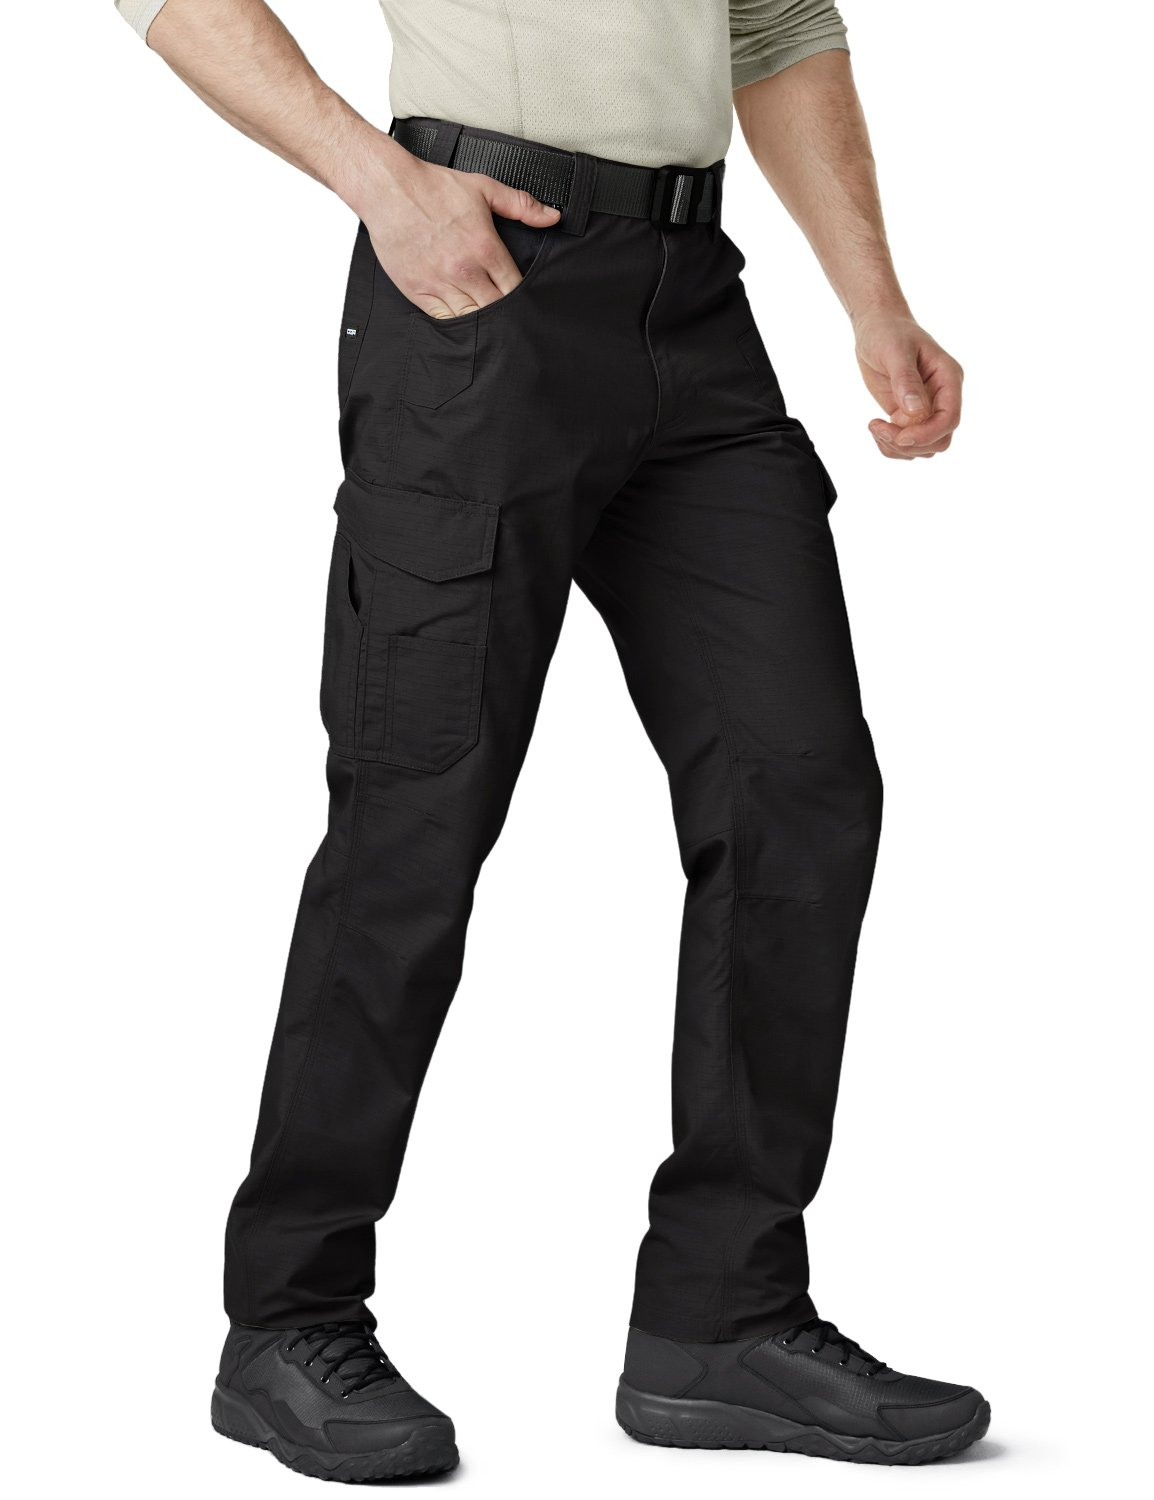 CQR CQ-TWP302-BLK_38W/34L Men's Operator Rip-Stop Tactical Work Utility Pants EDC TWP302 by CQR (Image #1)